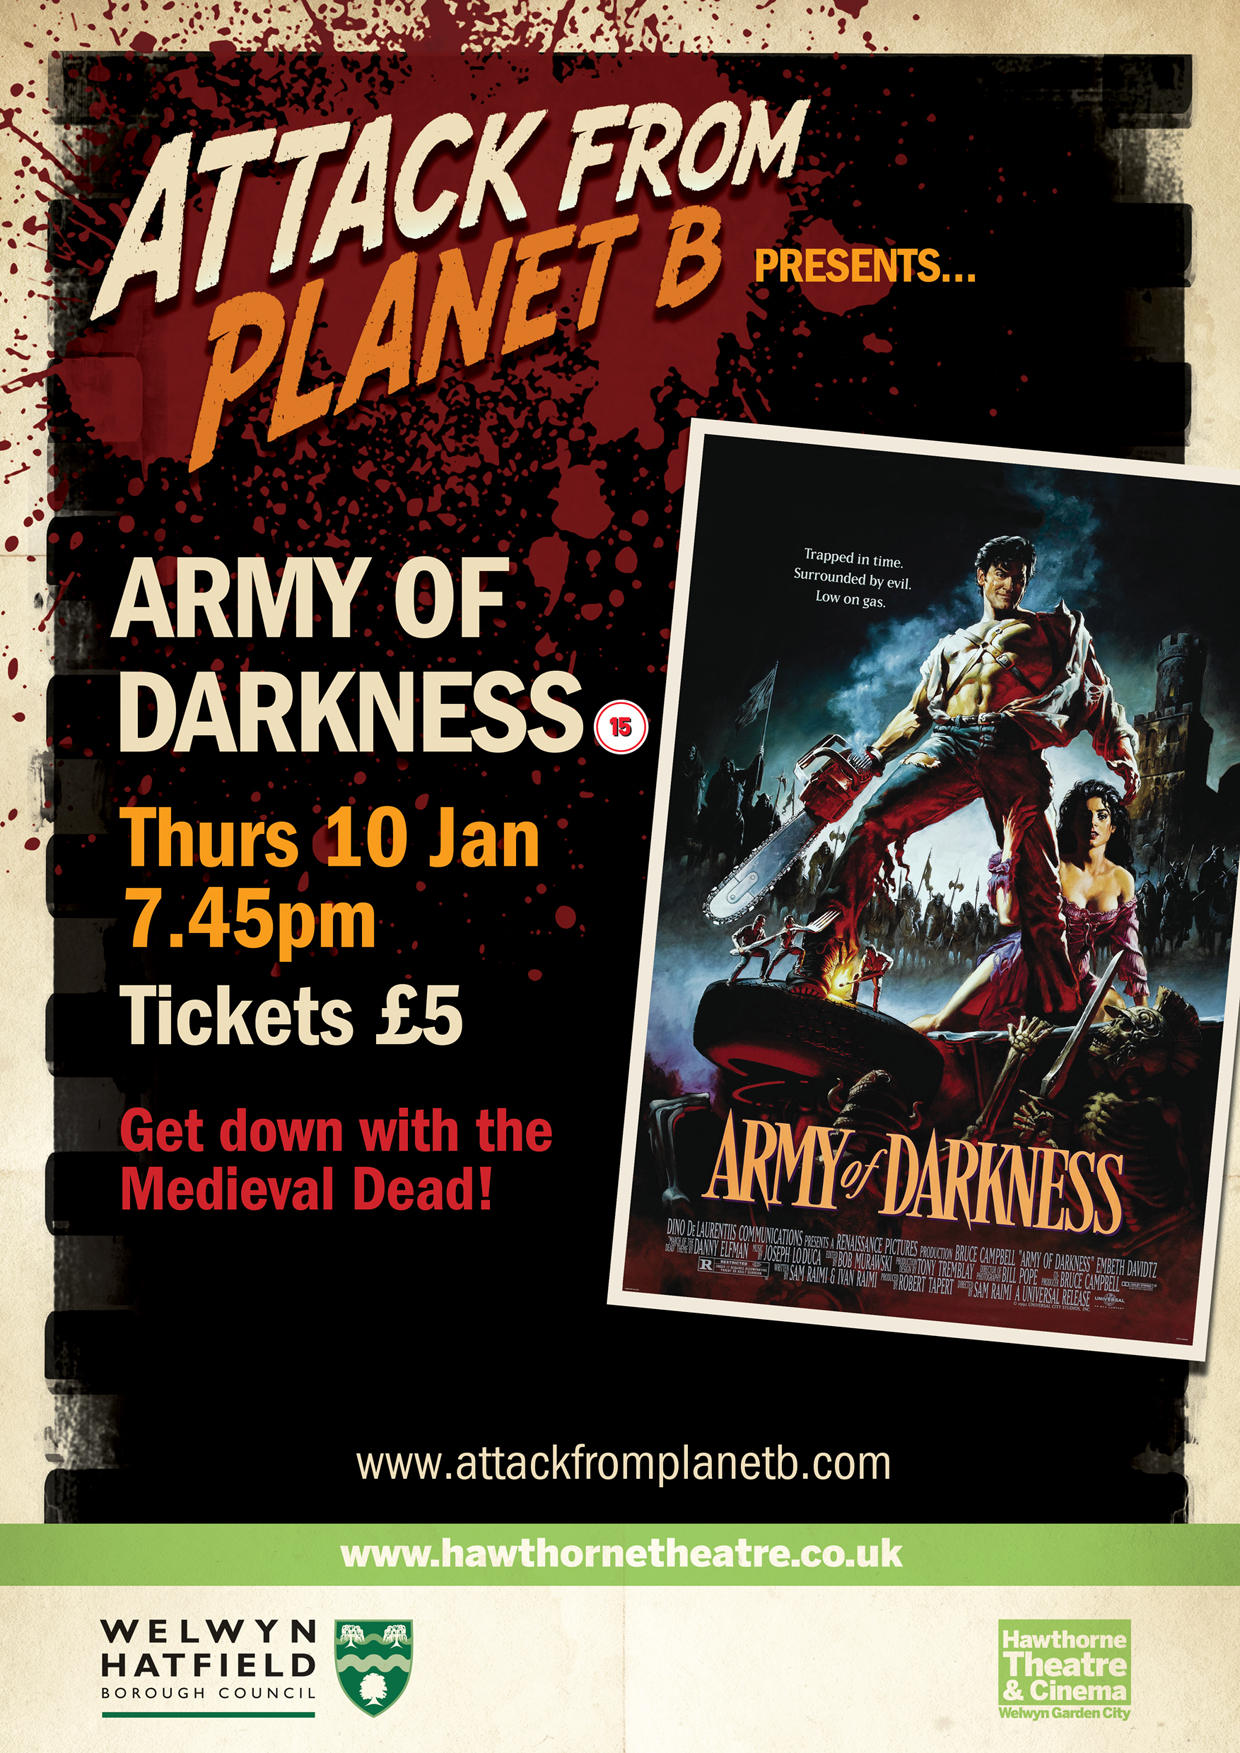 Attack From Planet B Presents ... Army Of Darkness